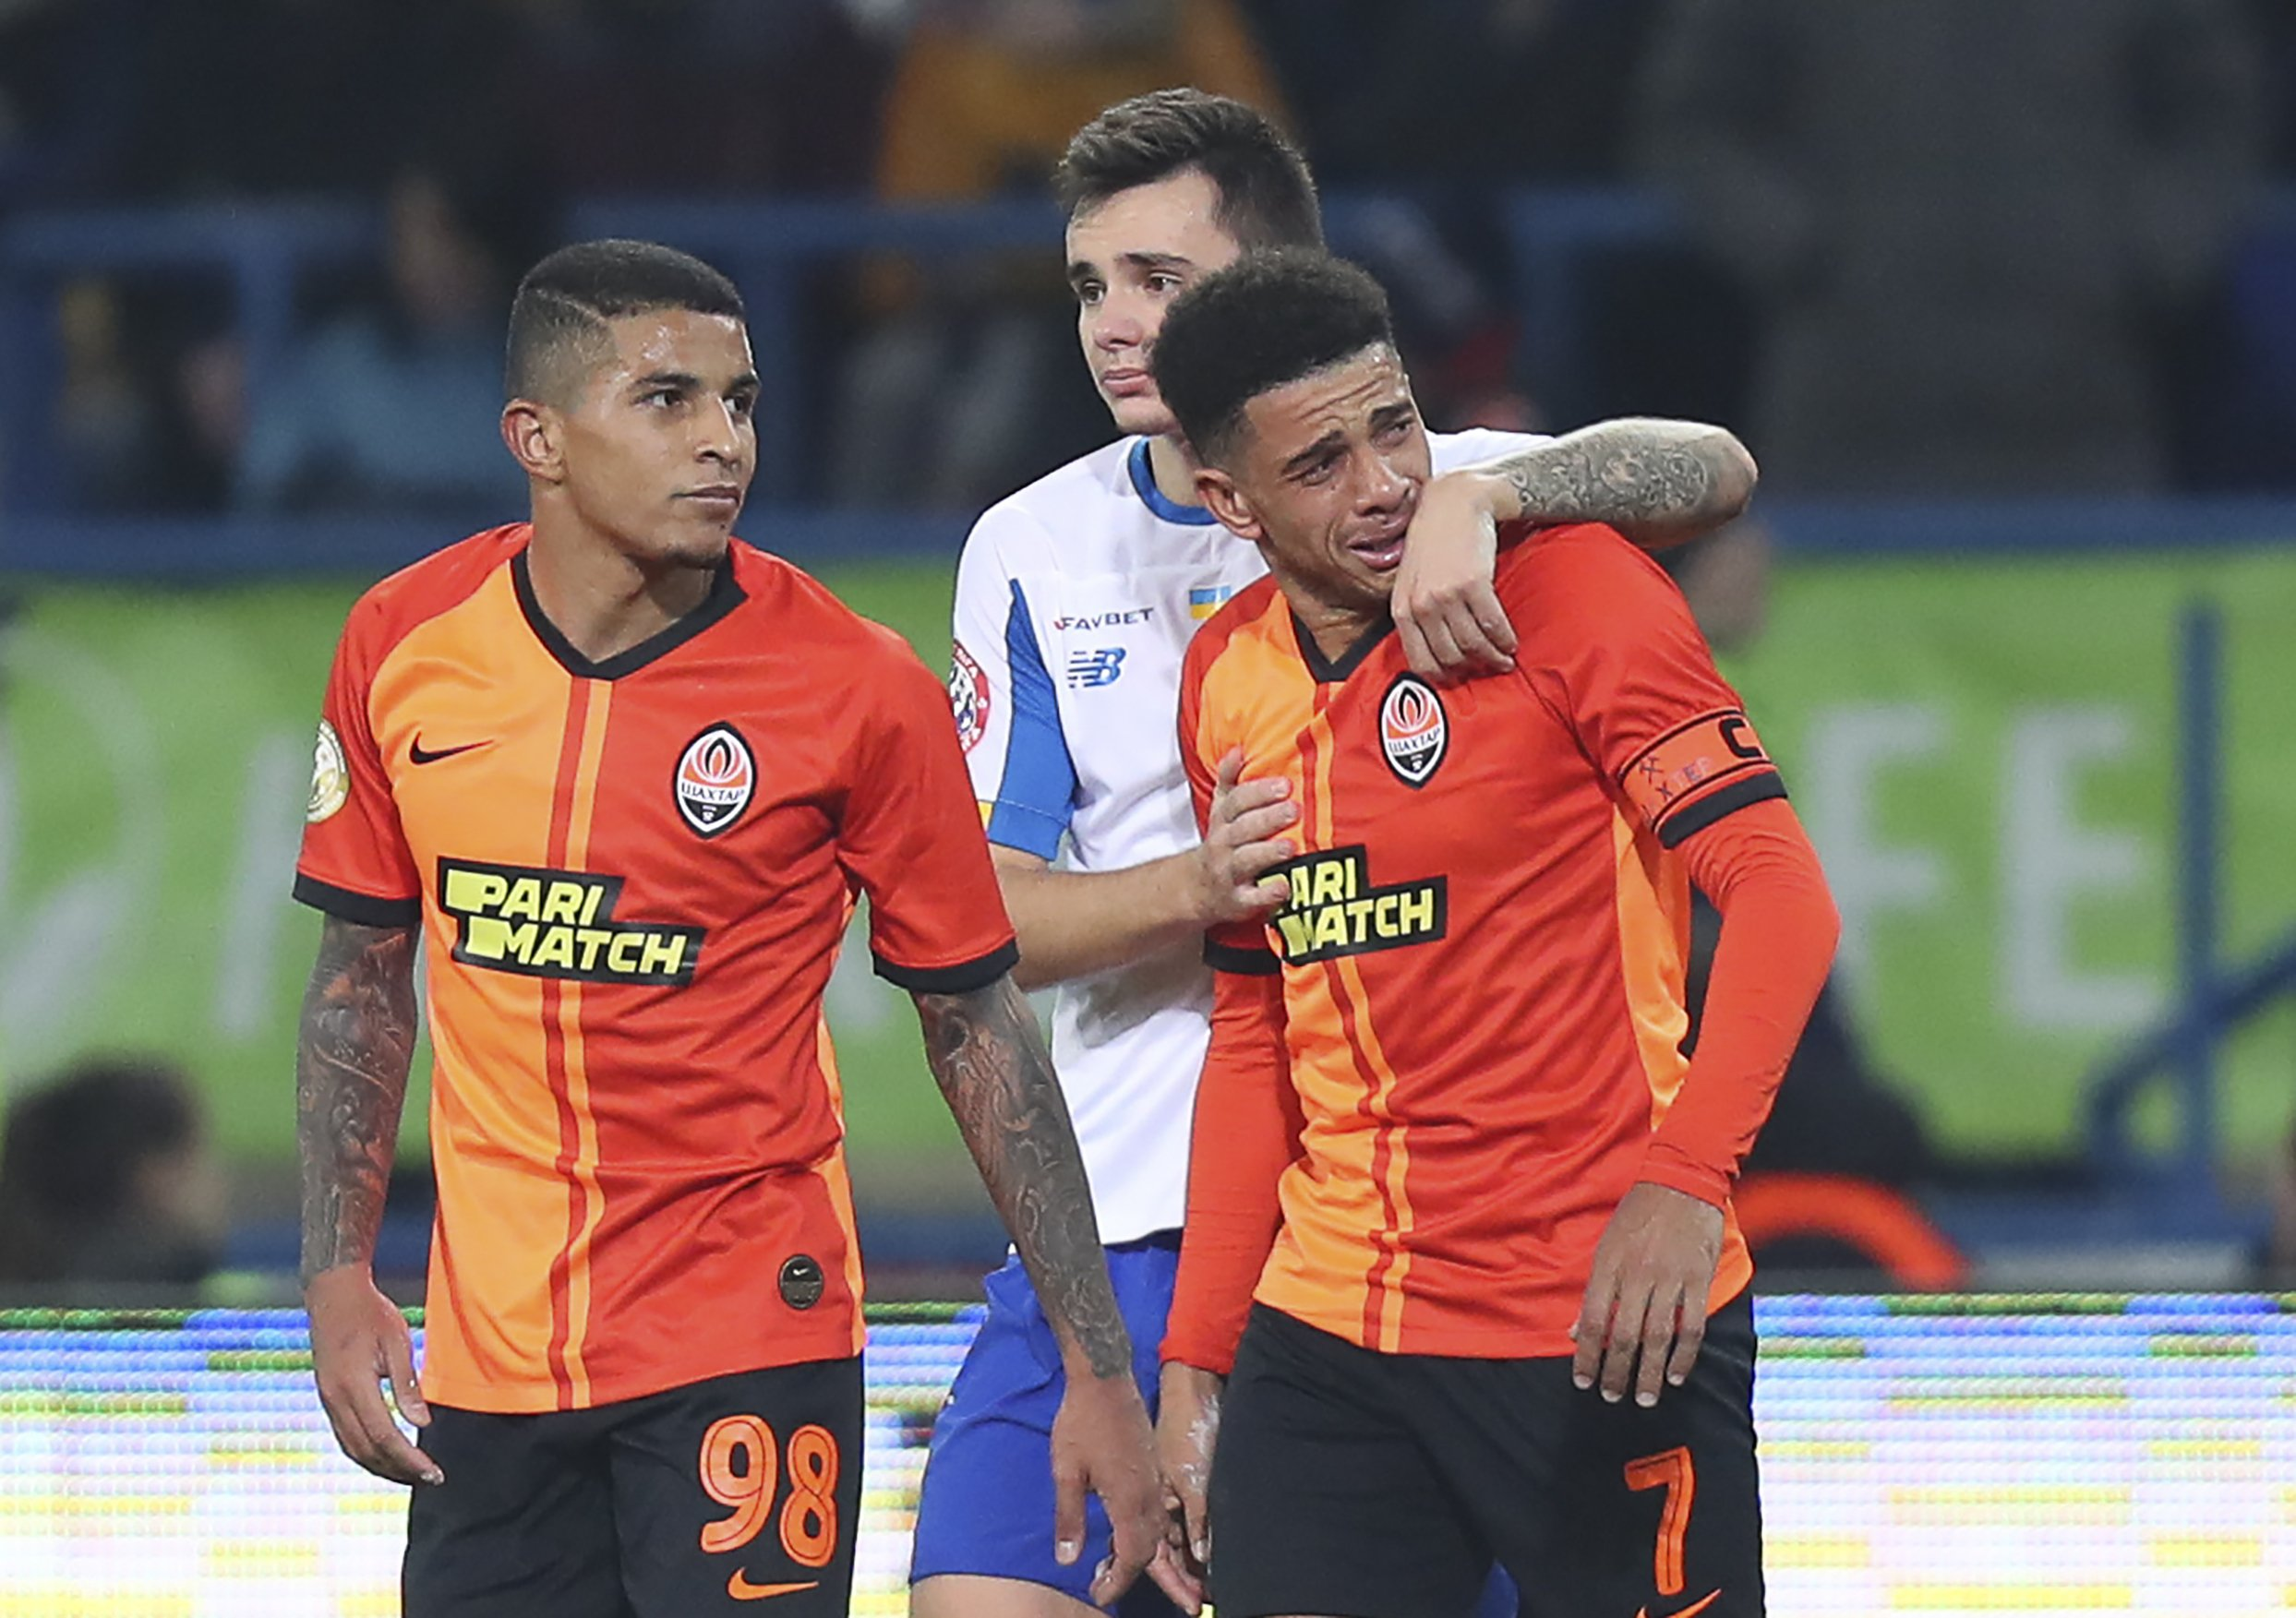 Brazilian player sent off in Ukraine for reaction to racism